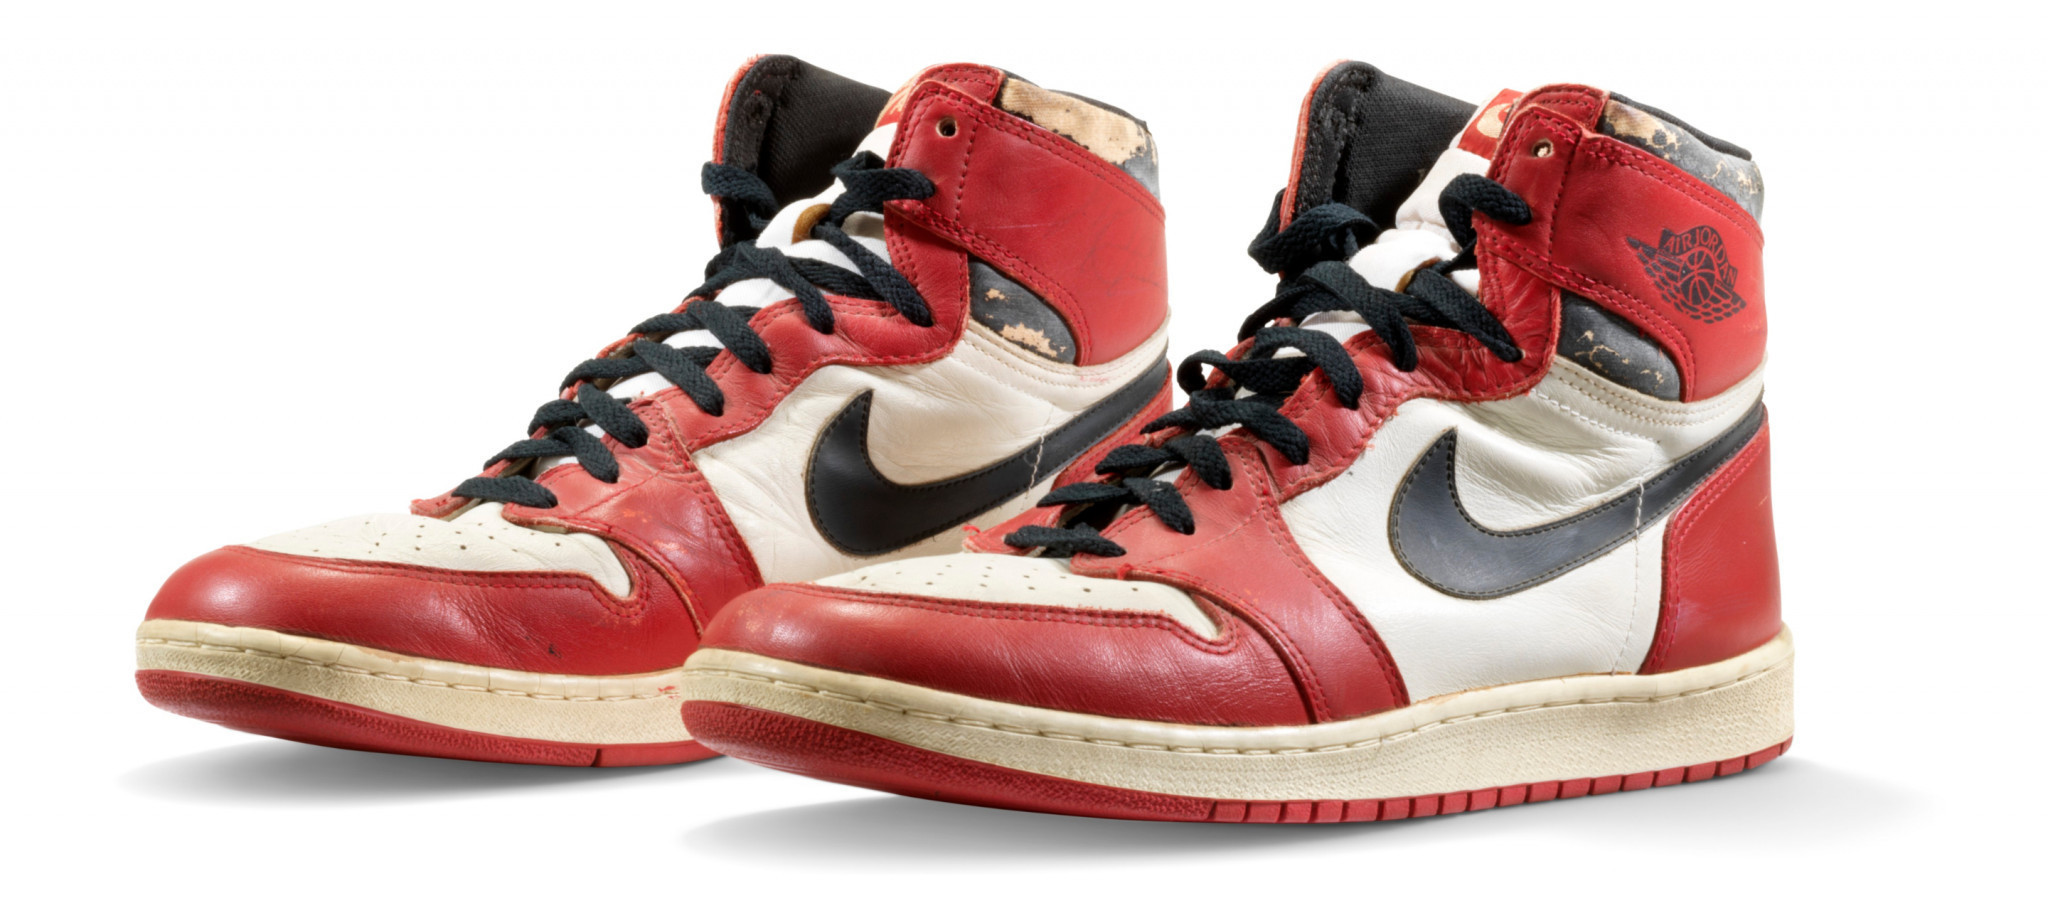 A rare pair of trainers worn by Michael Jordan during his rookie season have sold for a record $615,000 at auction ©Christie's